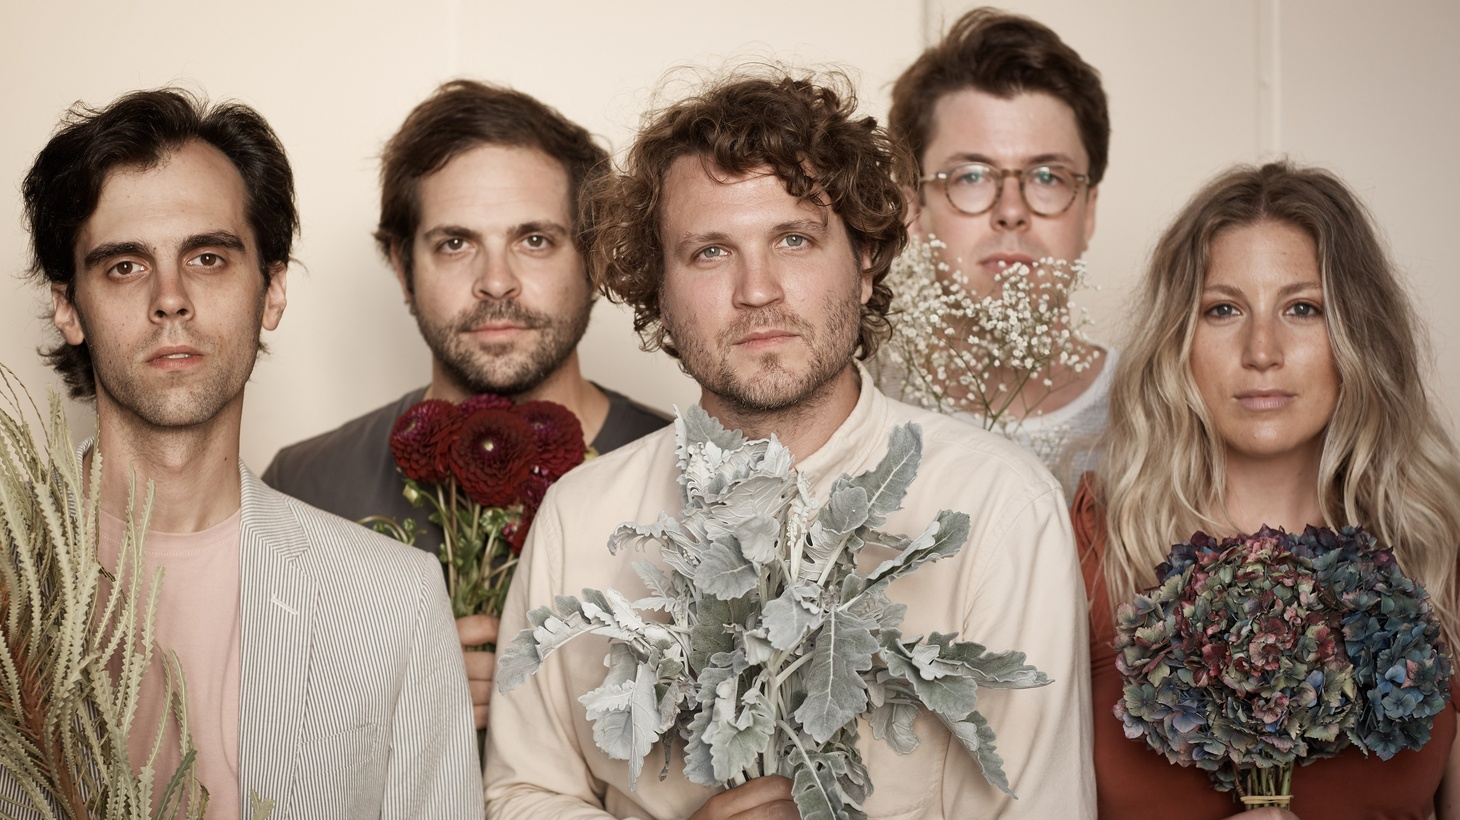 """Ra Ra Riot have a new track out that was co-written and produced by Rostam Batmanglij (formerly of Vampire Weekend). """"Bad To Worse"""" amplifies their pop-minded approach with bountiful arrangements."""